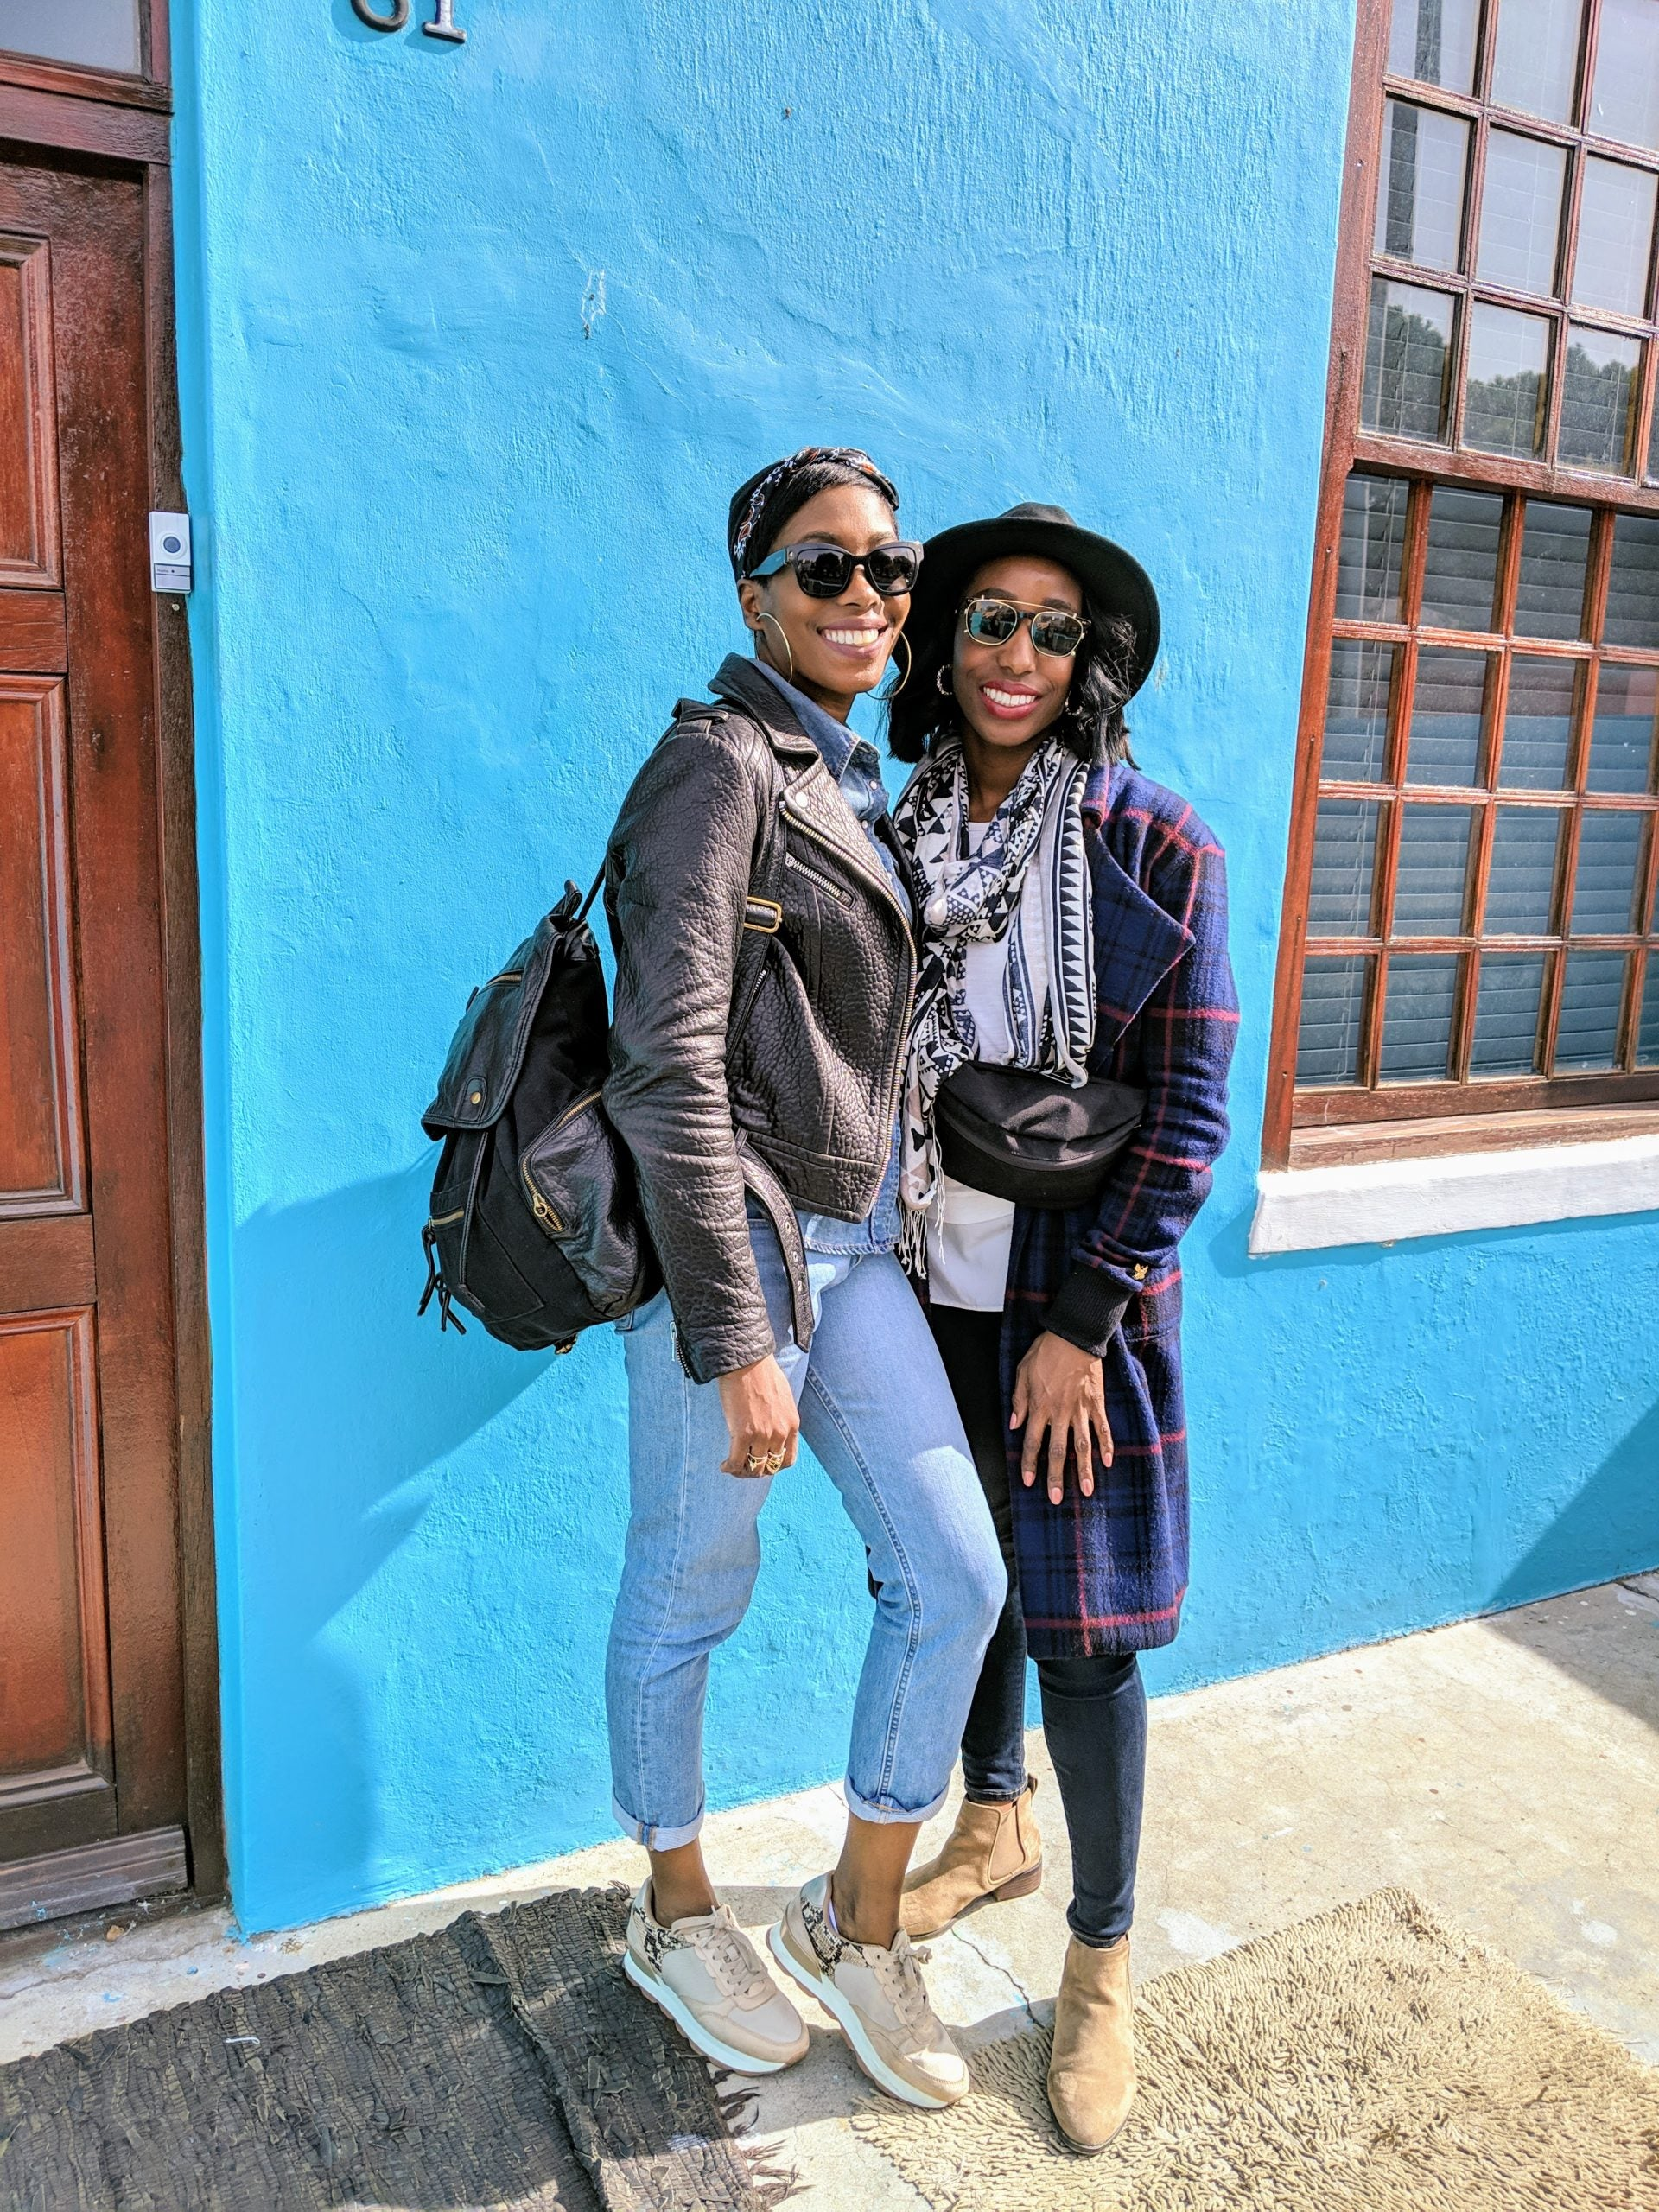 Sisters on street in Cape Town, South Africa